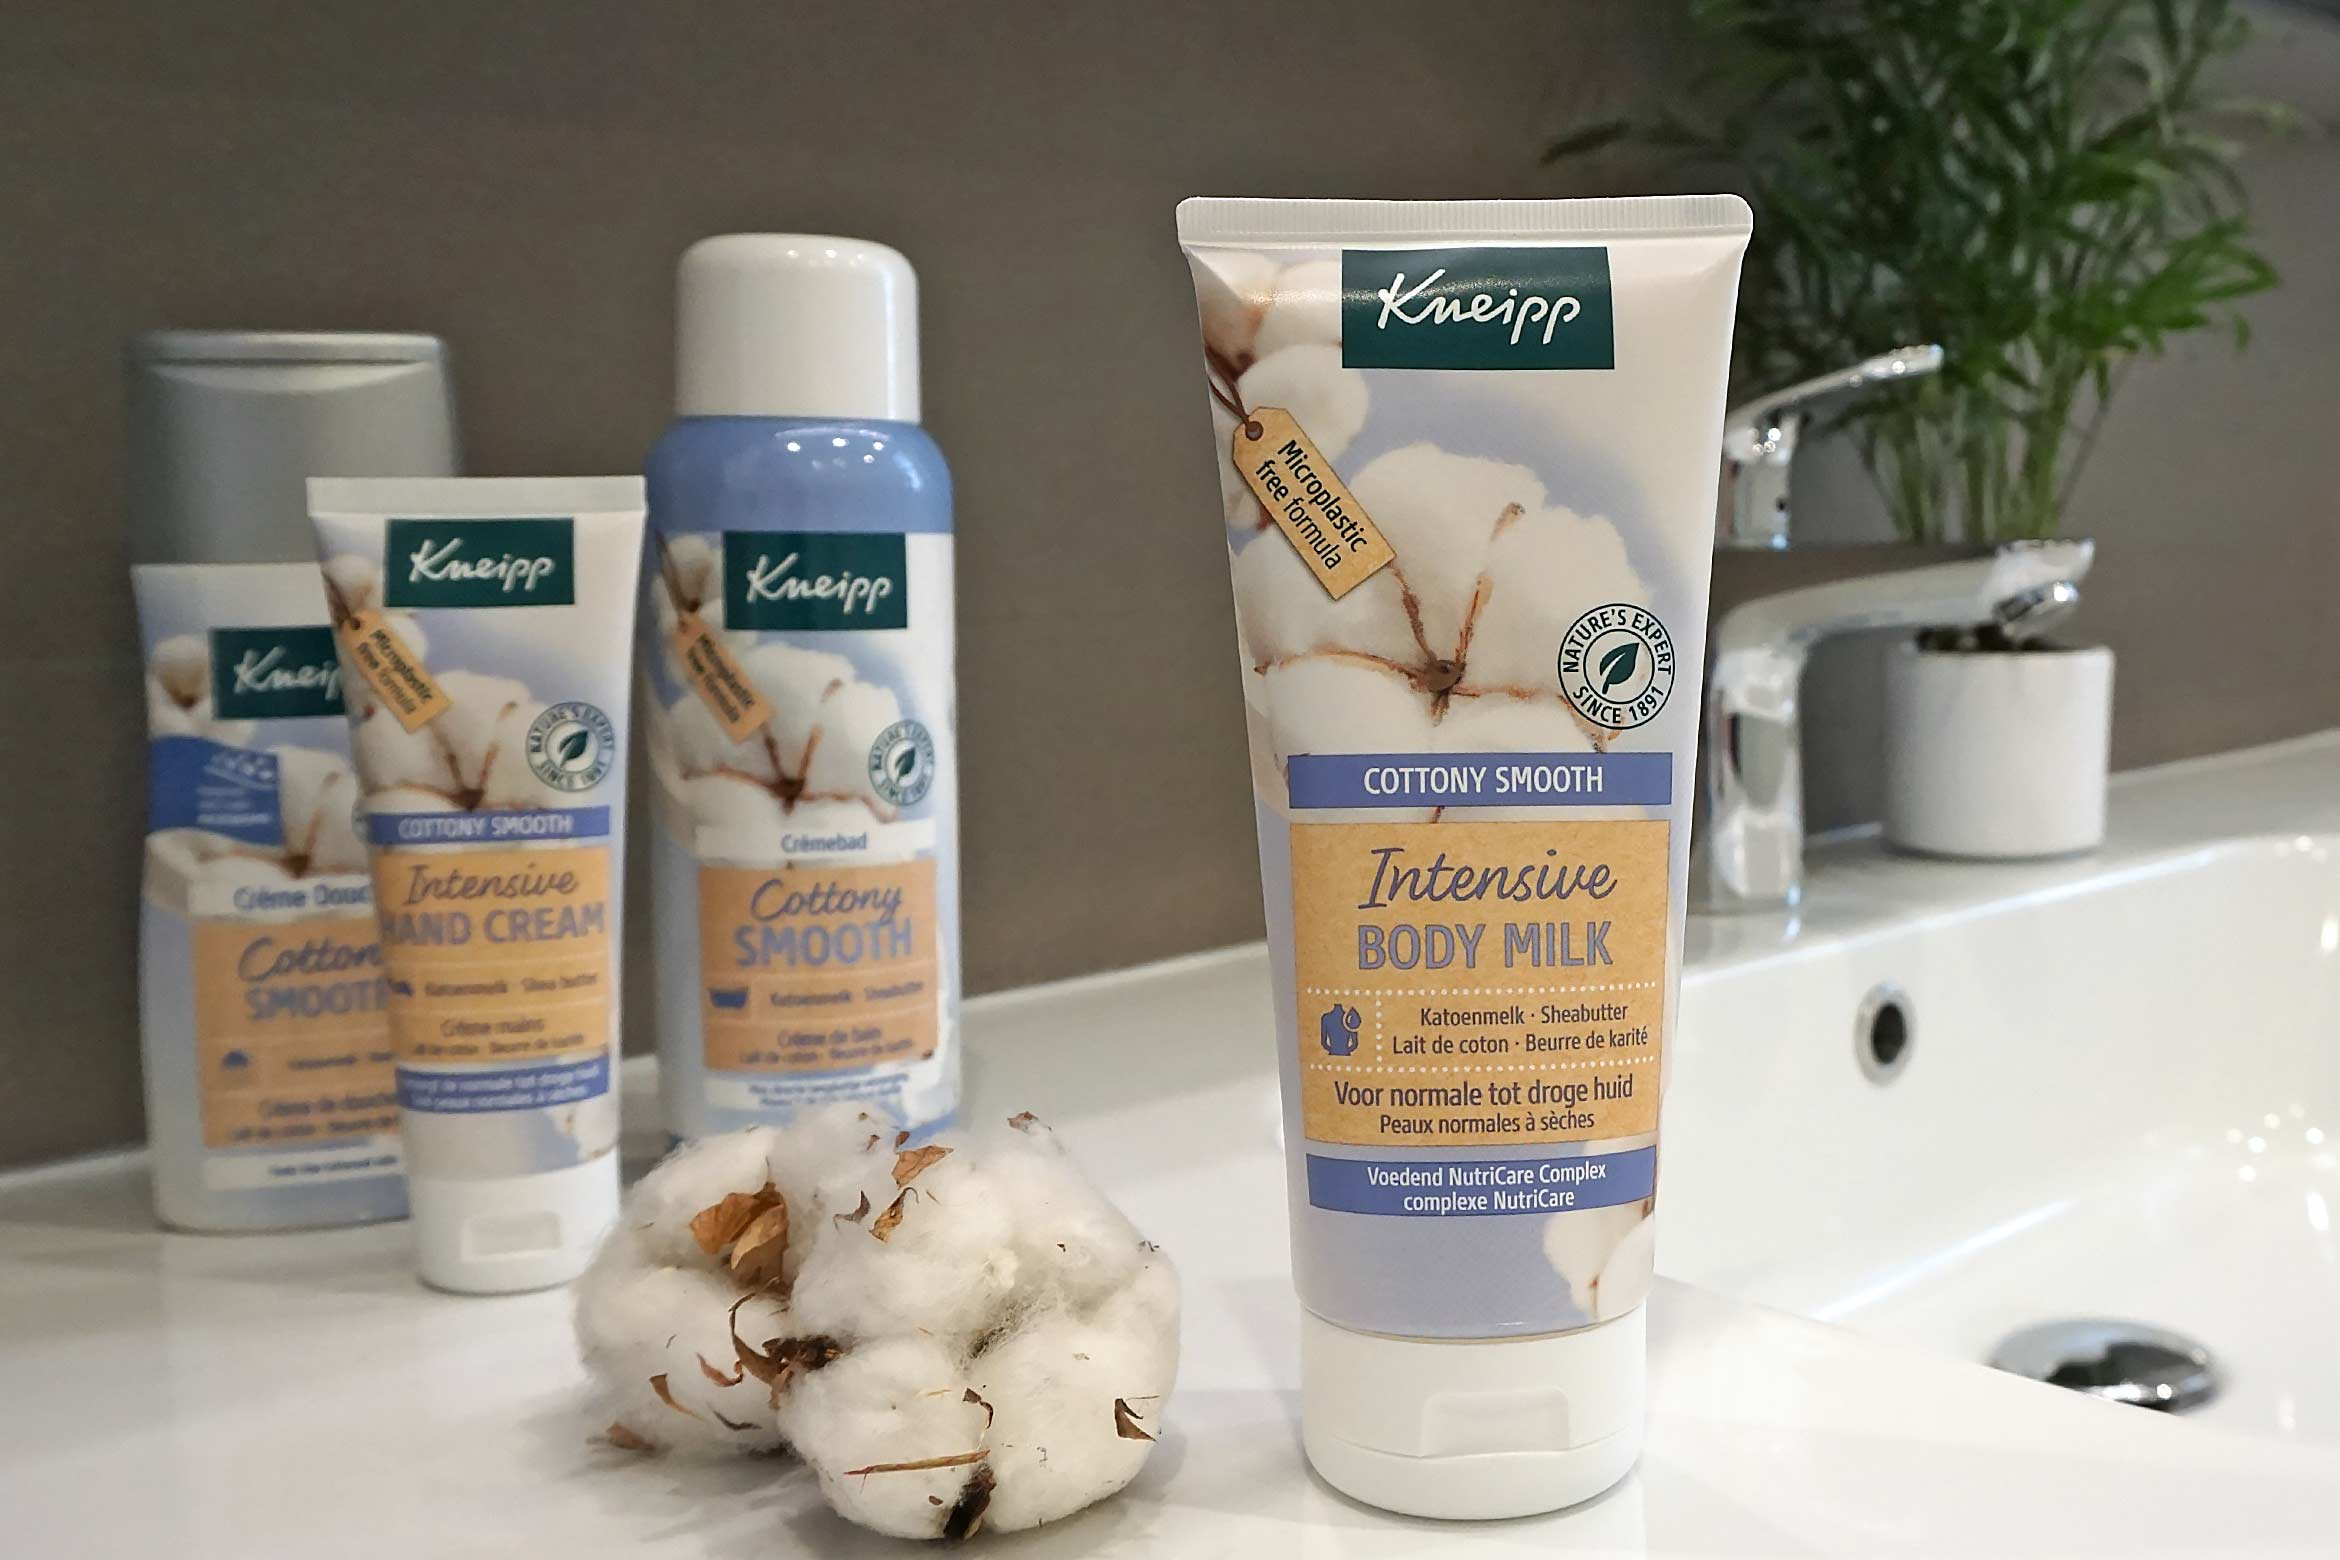 kneipp cottony smooth intensive body milk review